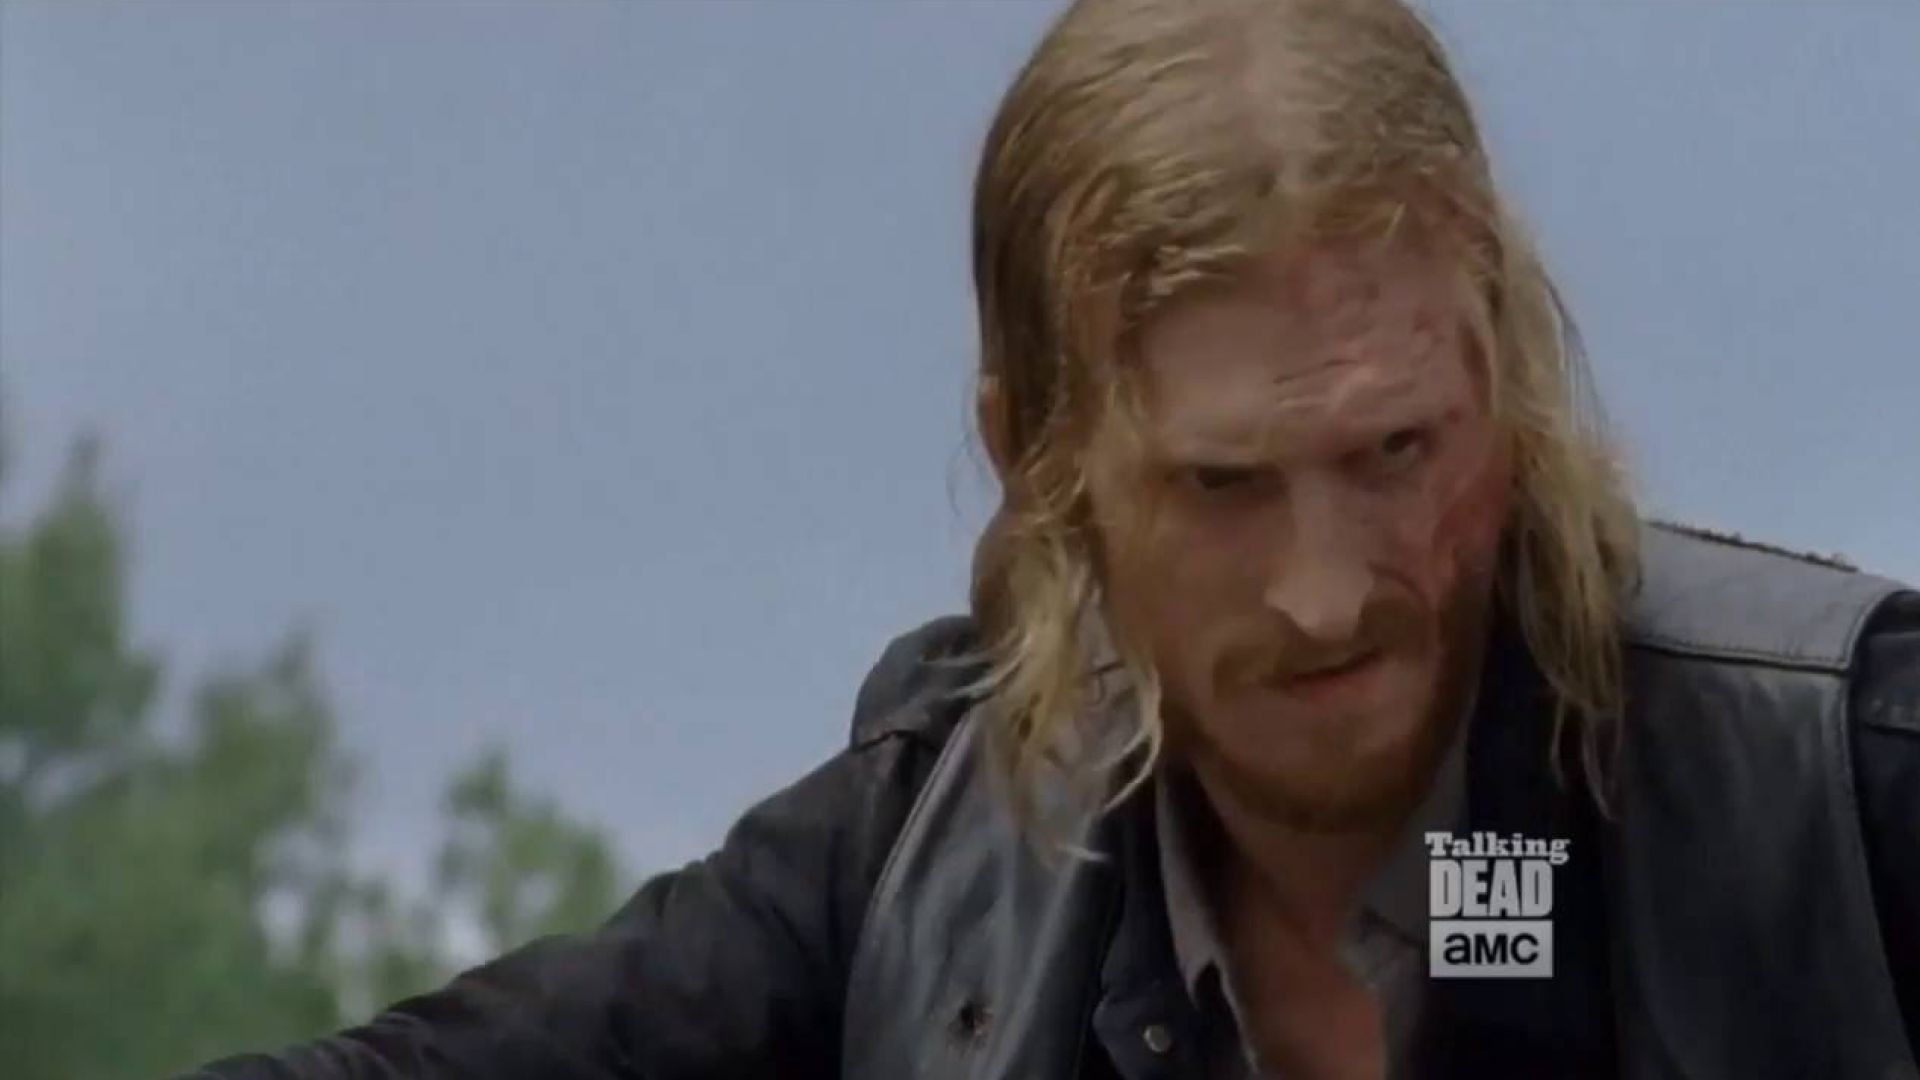 Here's our first, unpleasant look at season 7 of 'The Walkin